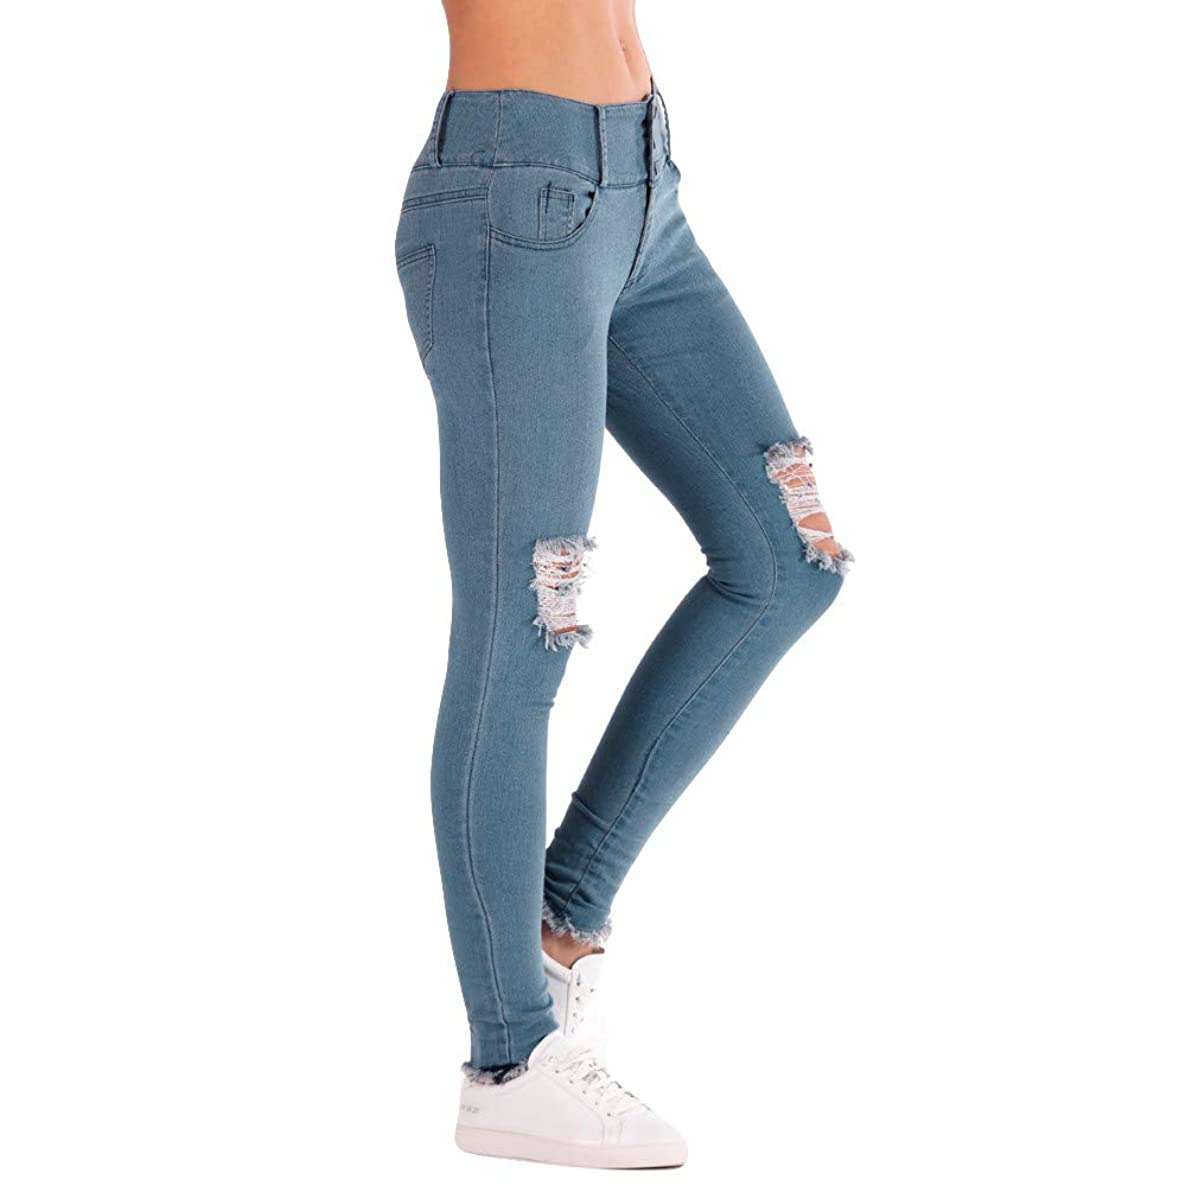 Women's Skinny Jeans, 2019 New Elastic Waist Stretch Ripped Distressed Denim Jeans Pants by E-Scenery